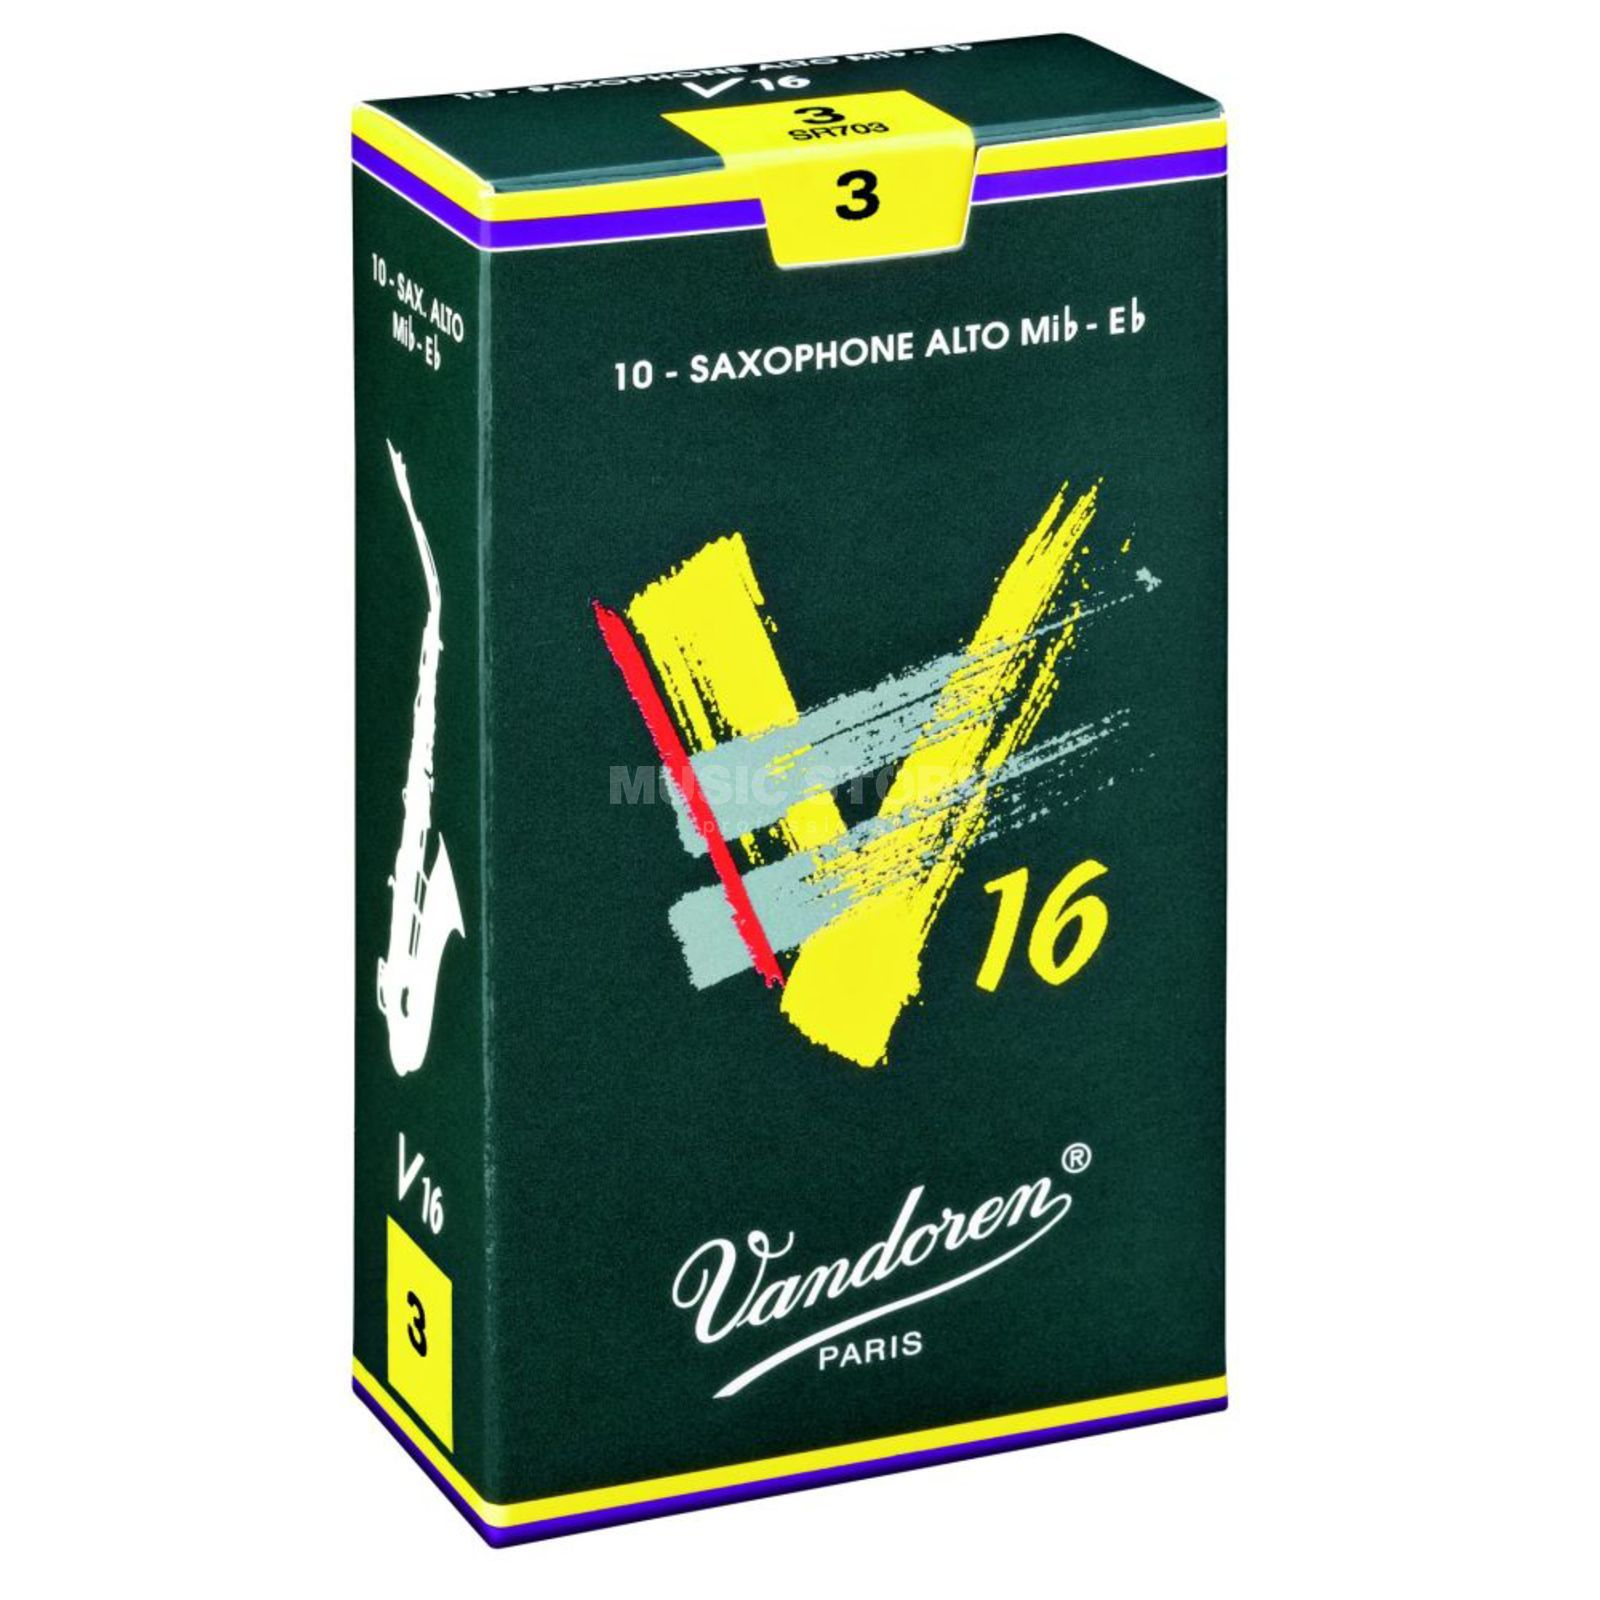 Vandoren V16 Alto Sax Reeds 1.5 Box of 10 Product Image